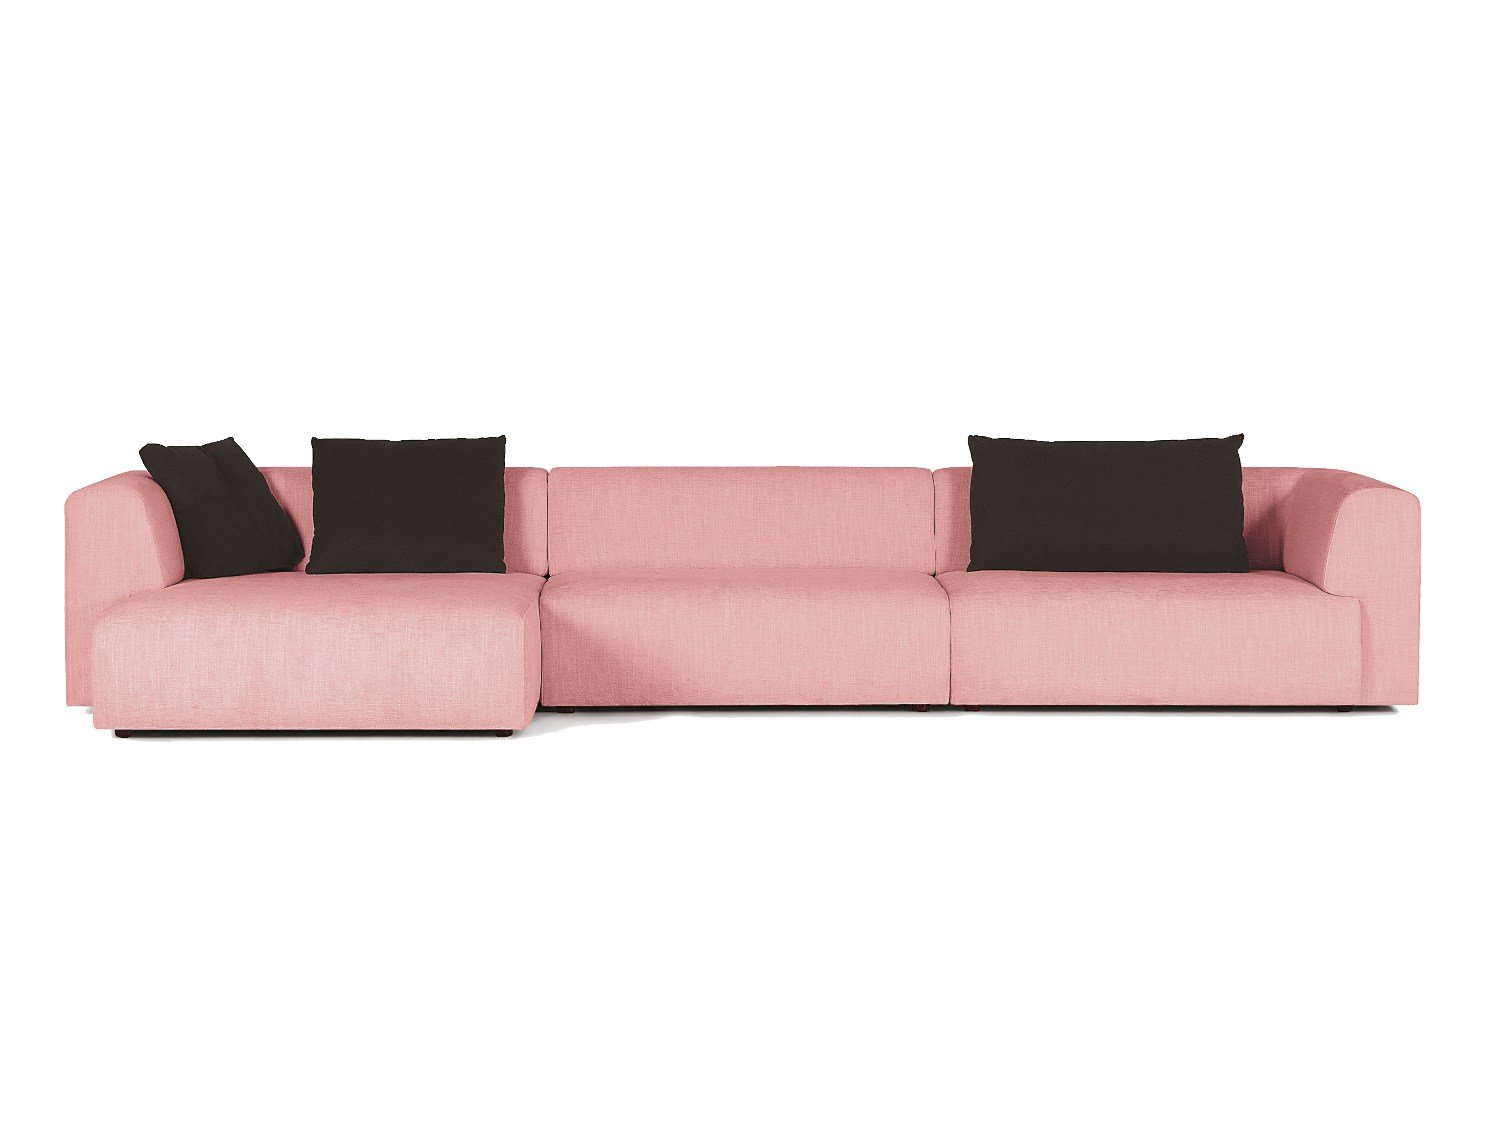 Duo sofa with chaise longue by sancal design rafa garc a for Chaise longue style sofa